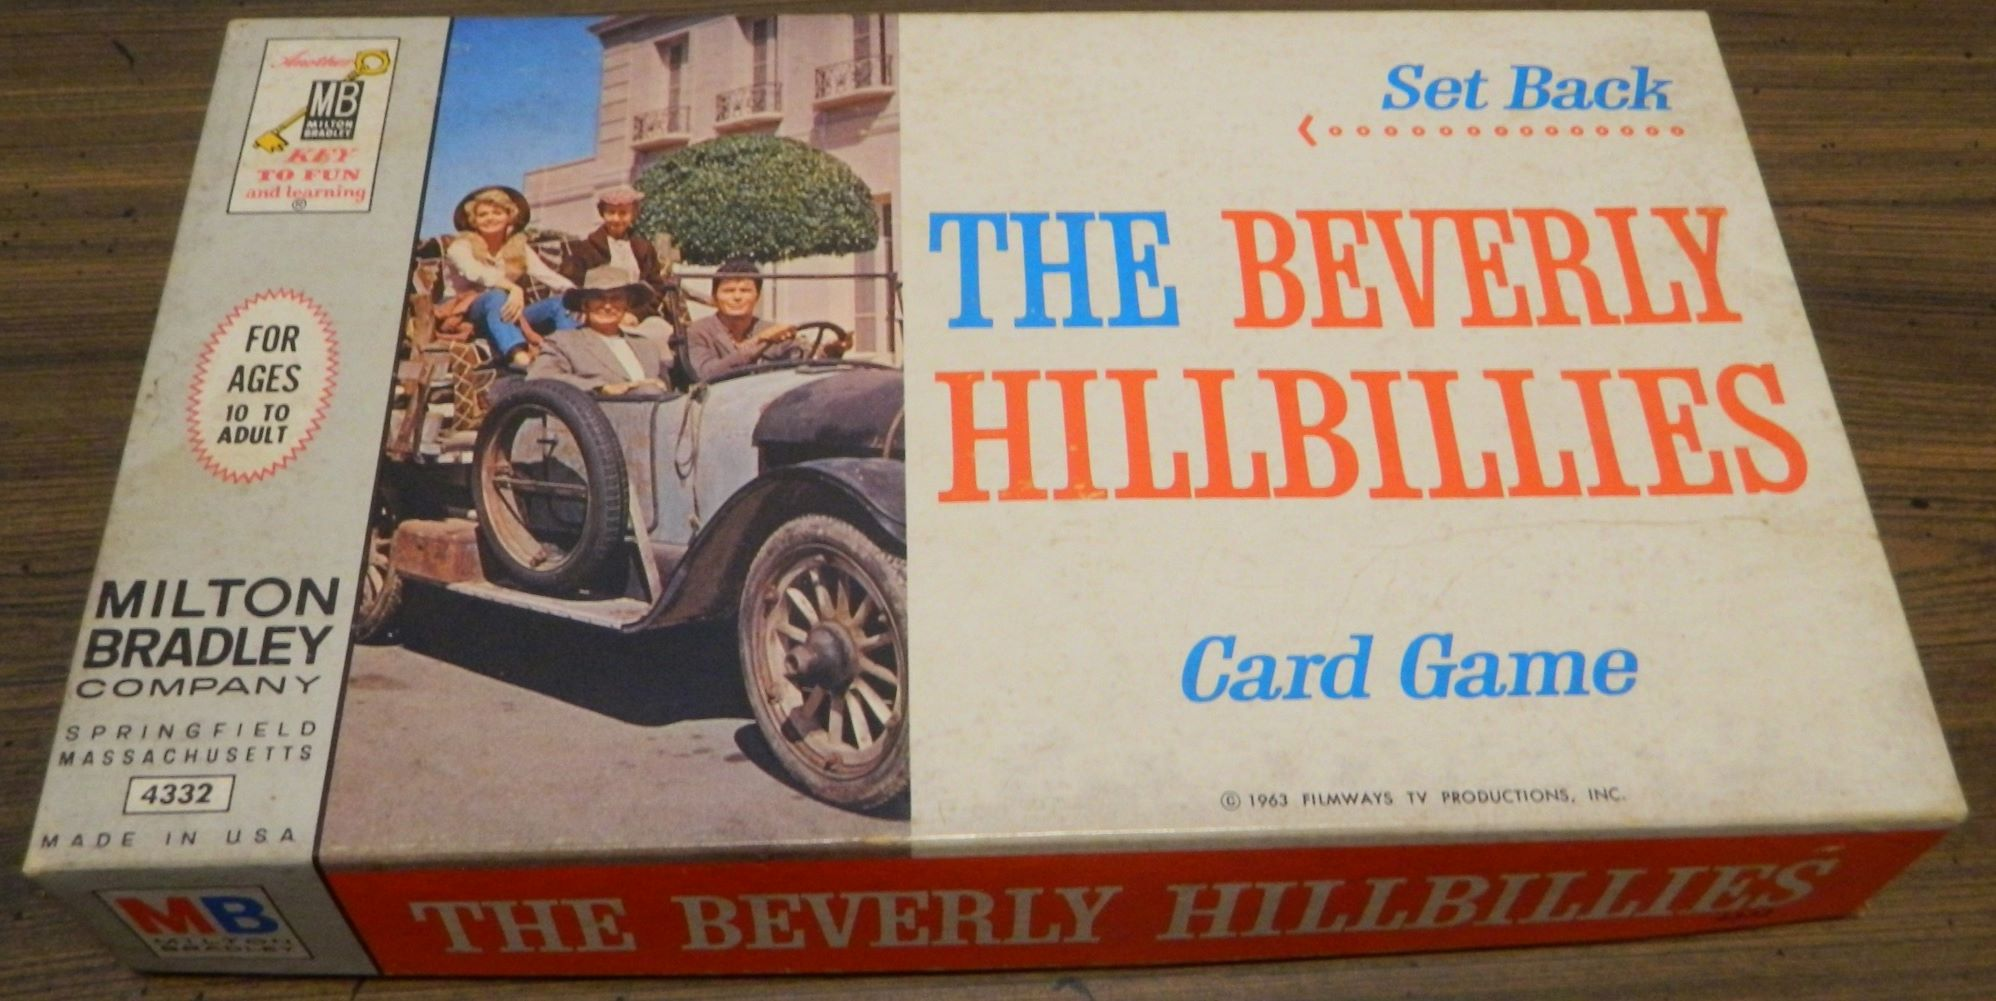 Set Back The Beverly Hillbillies Card Game Box